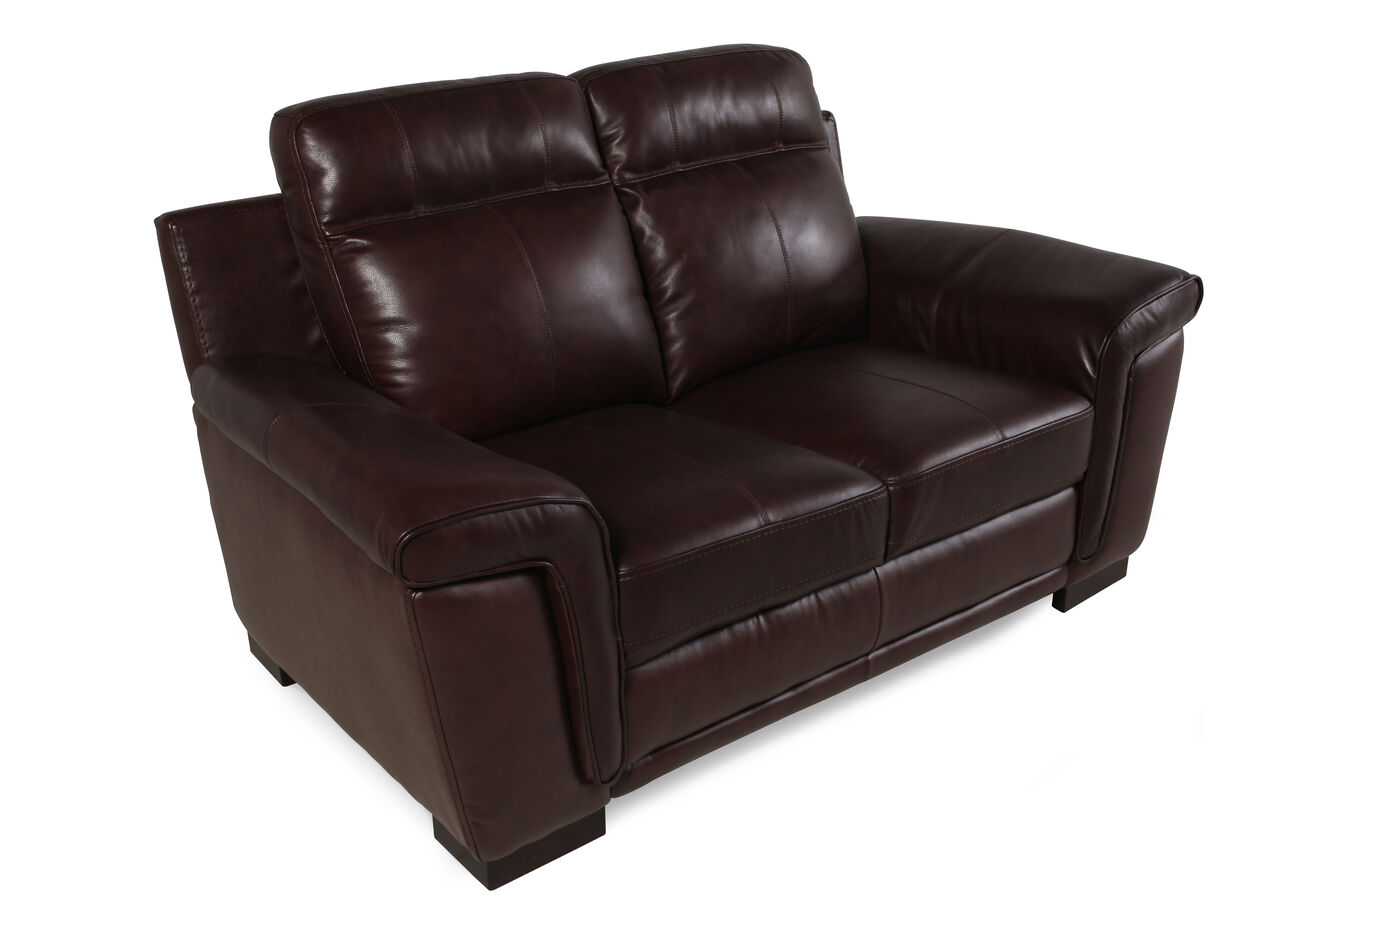 Contemporary Leather 67 Loveseat In Chocolate Brown Mathis Brothers Furniture